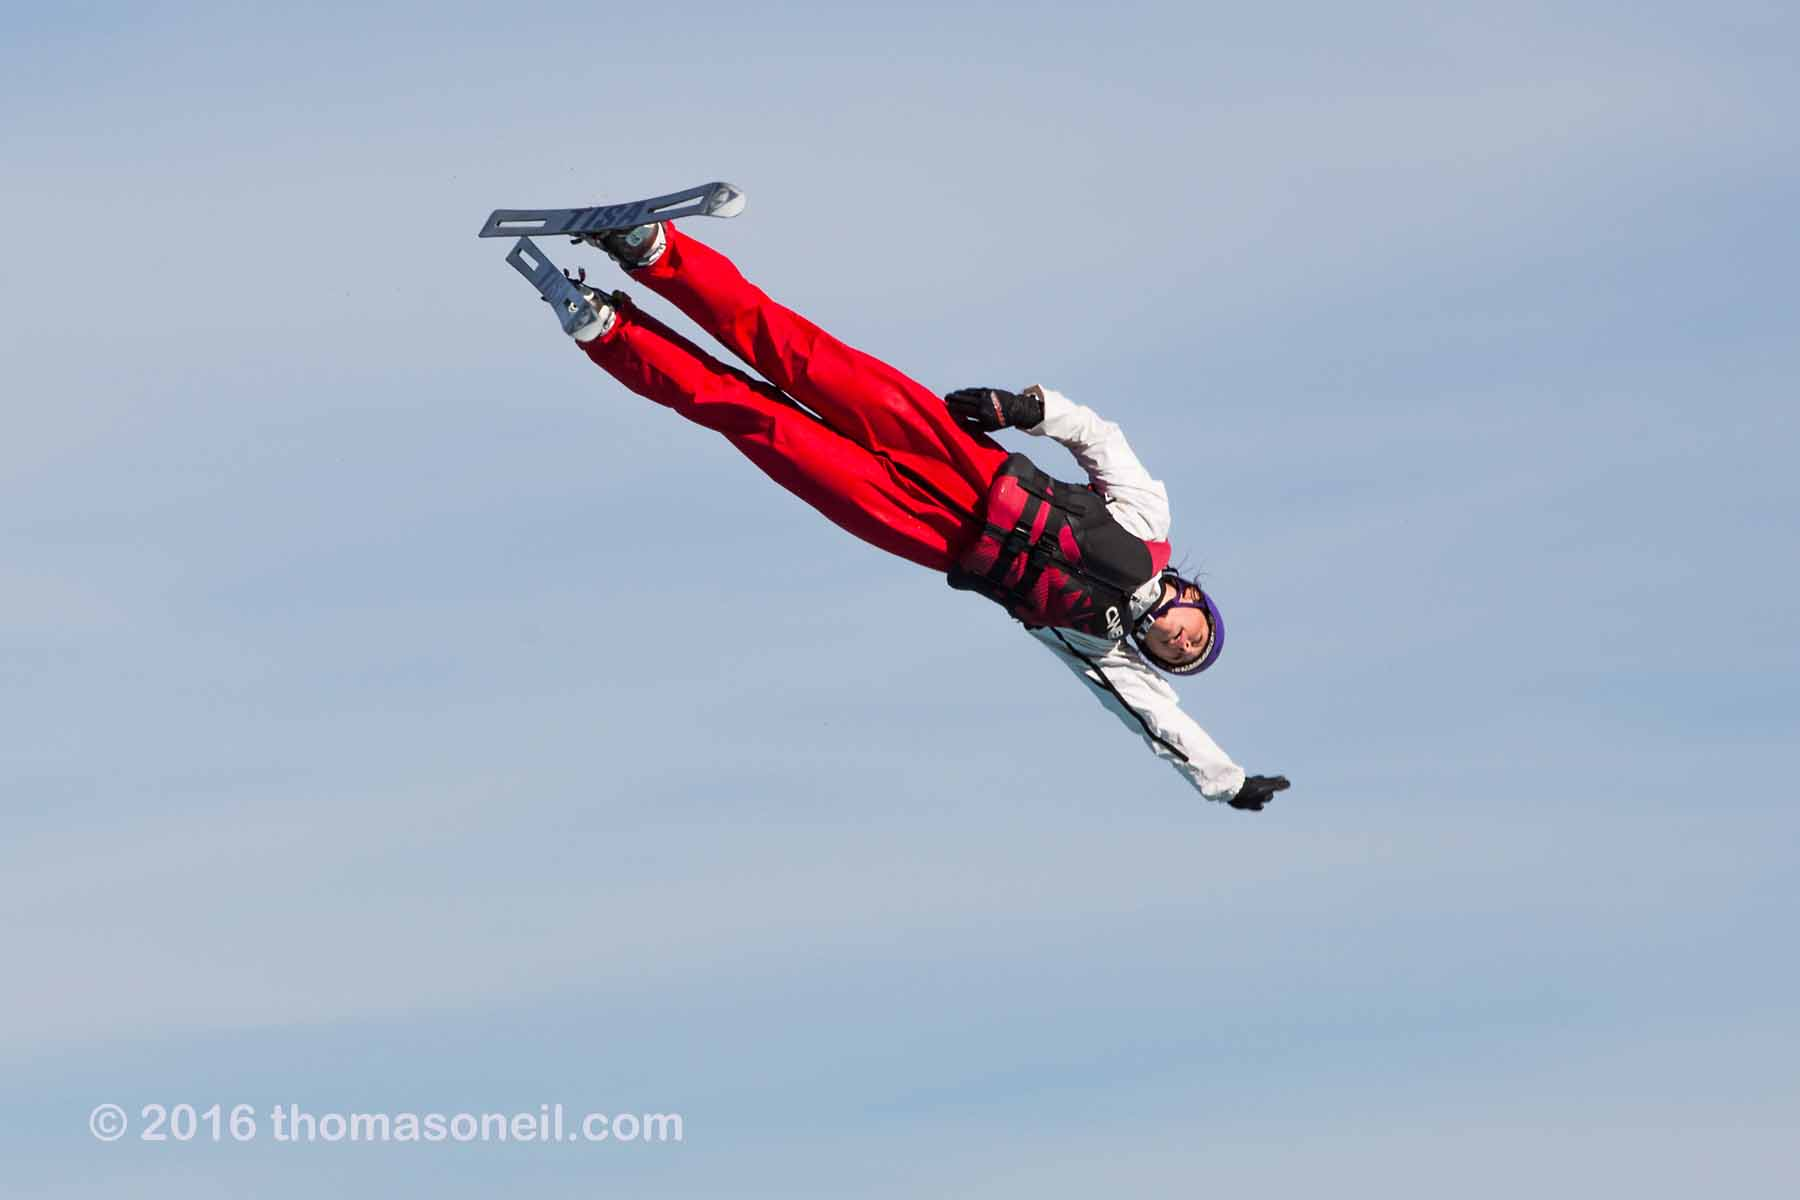 Aerial skiers at U.S. Olympic Training Complex in Park City, UT, October 2016.  Click for next photo.